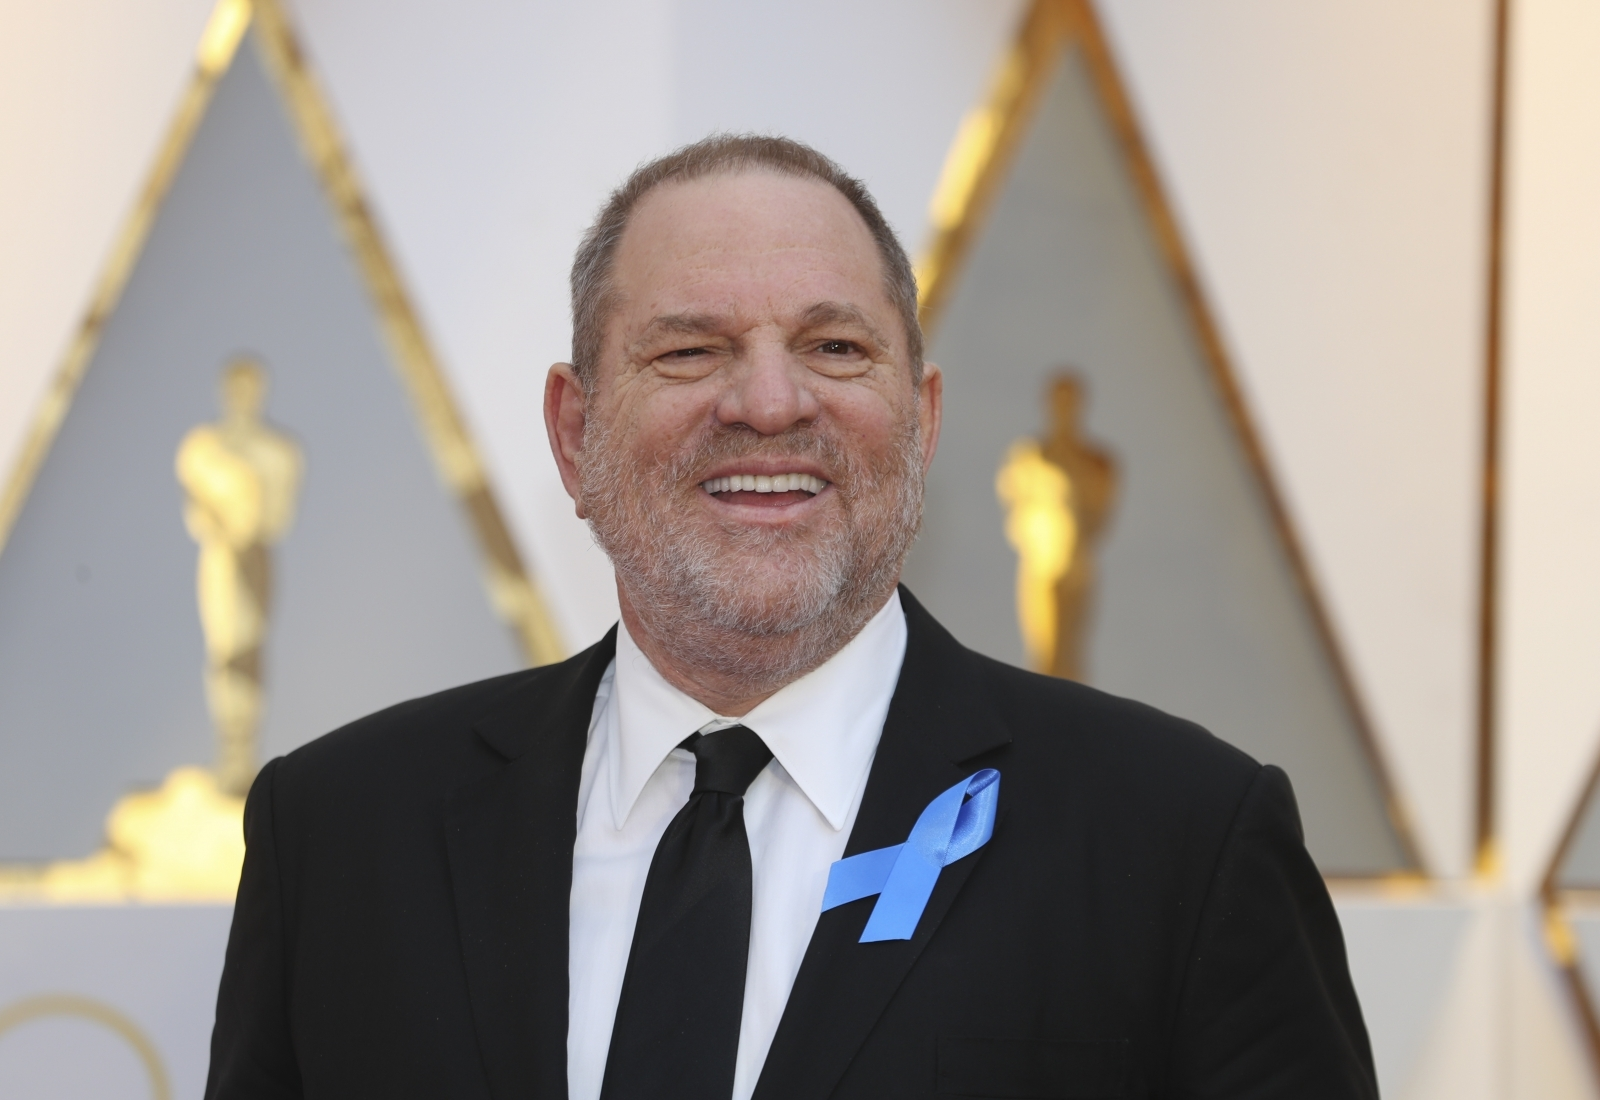 Harvey Weinstein sexual harassment claims 'depressing but not surprising'